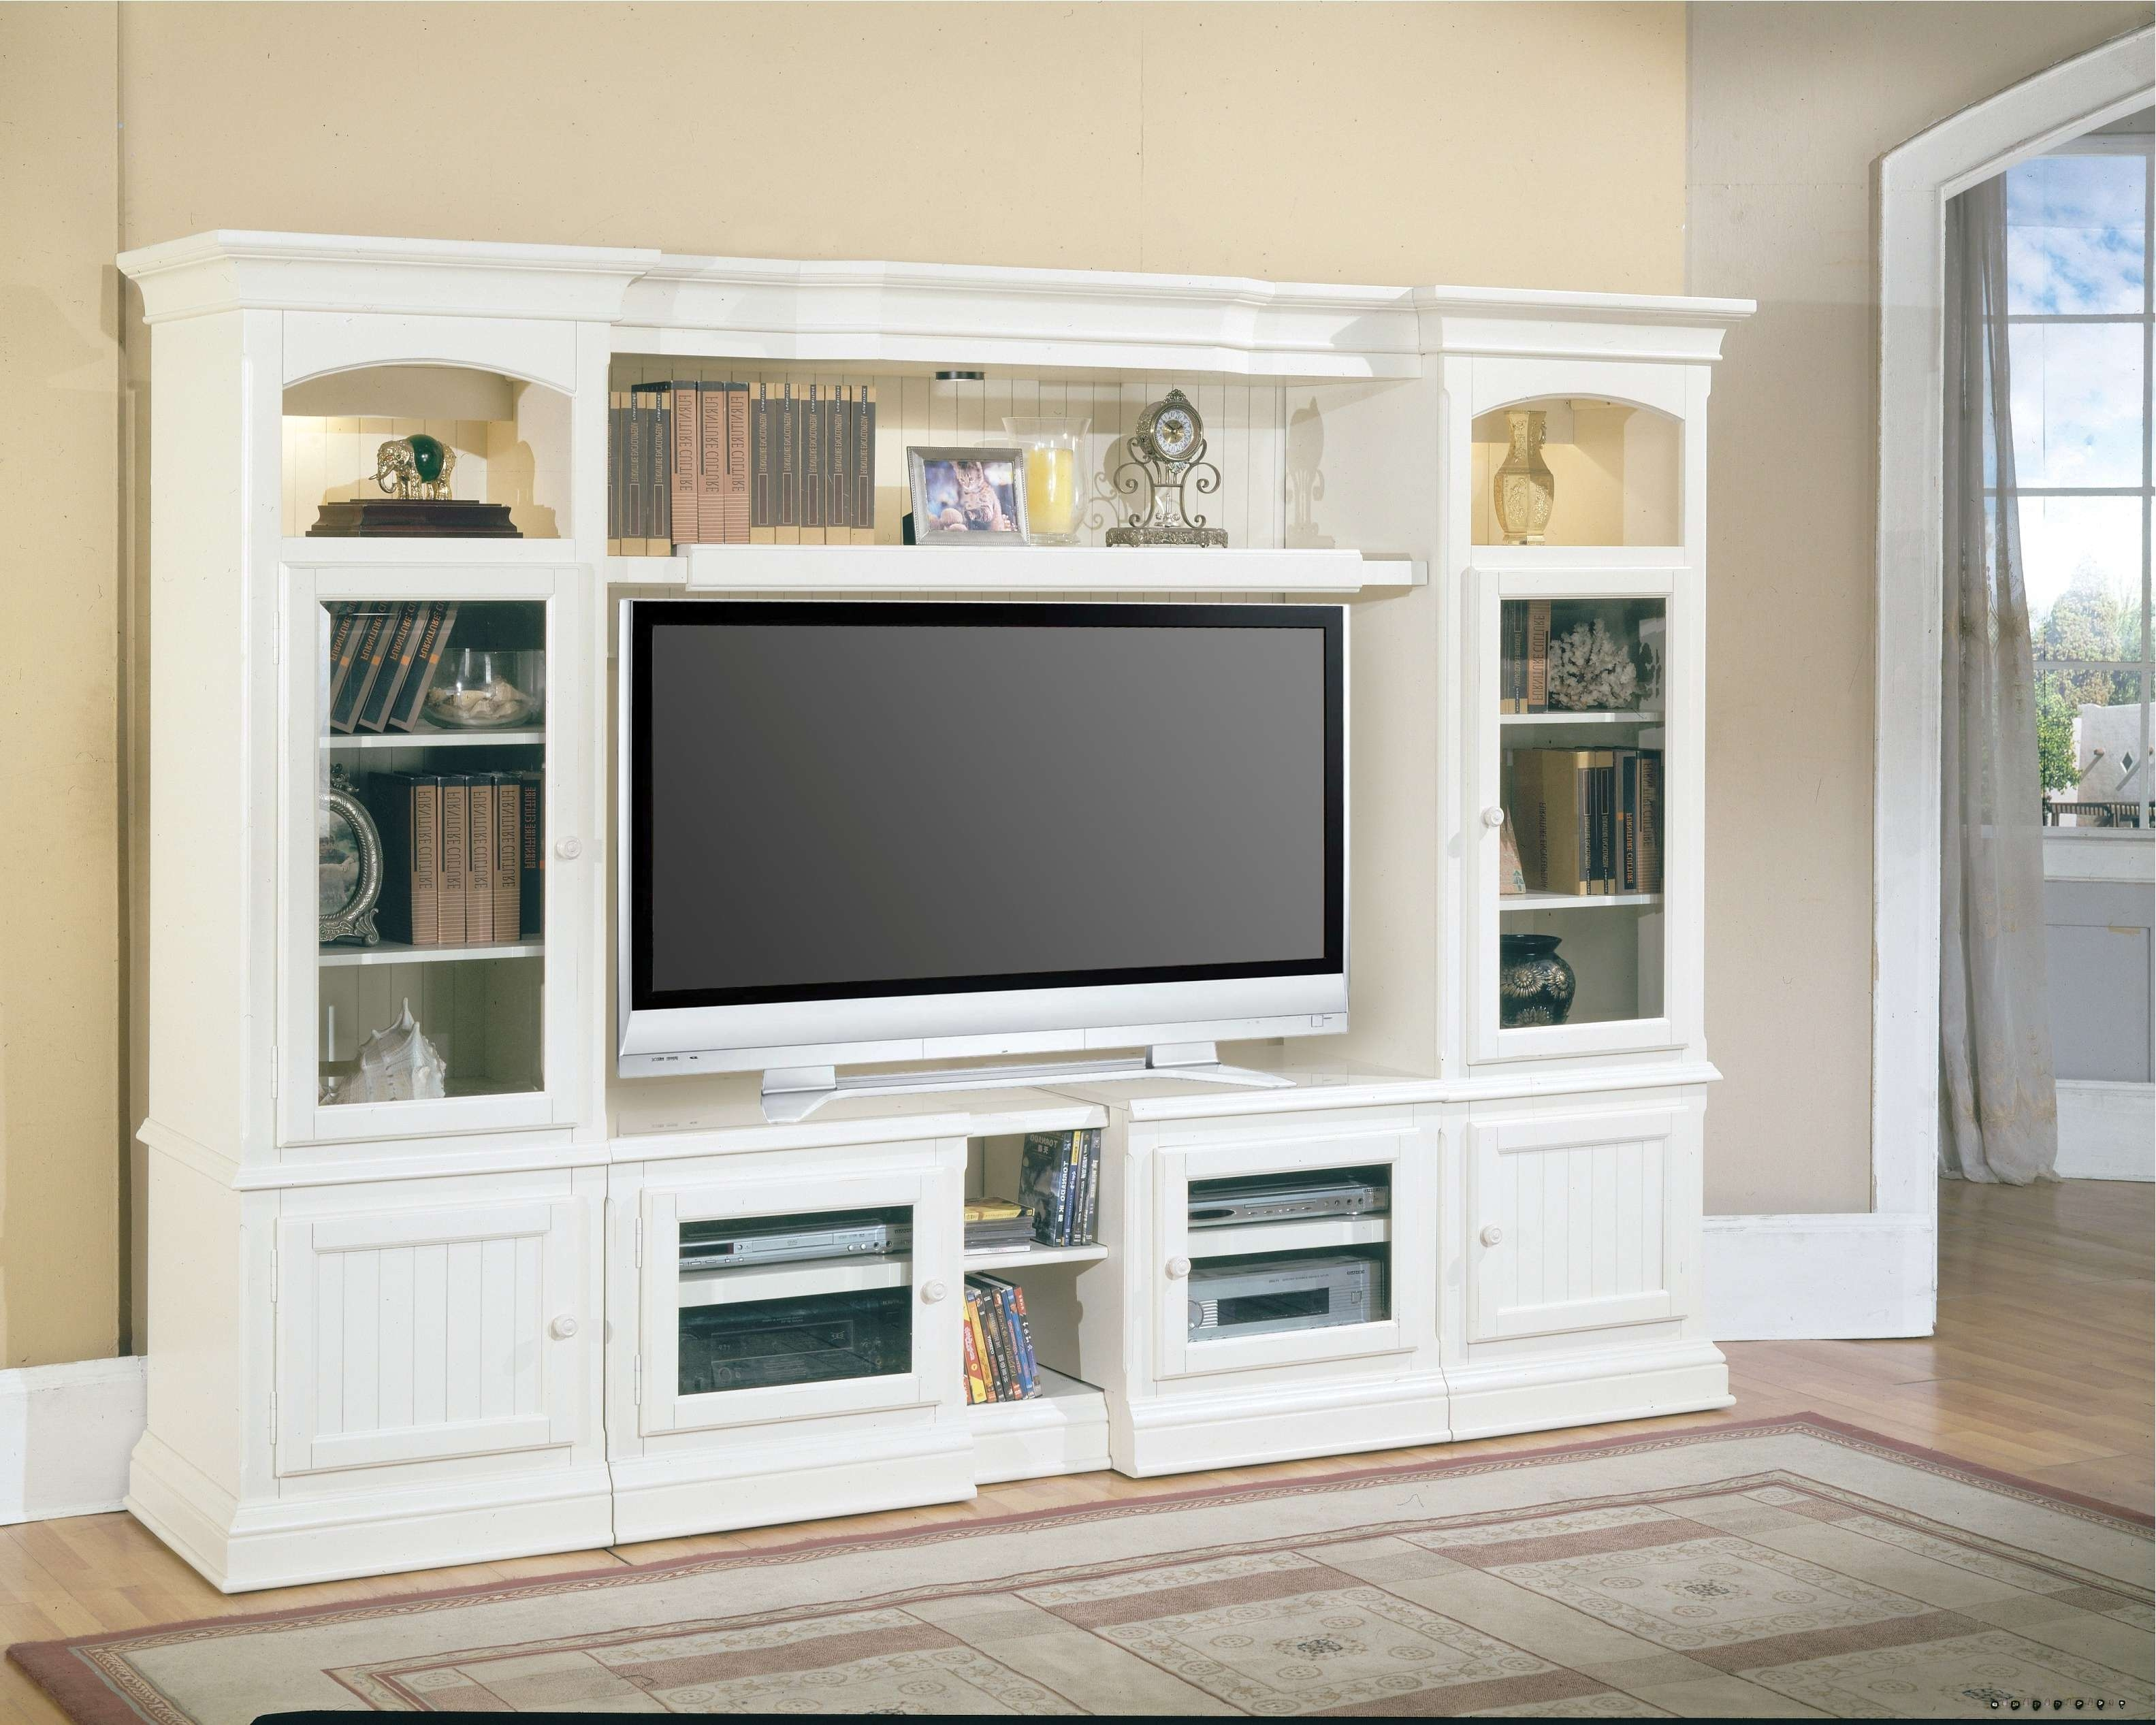 Furniture : Wall Unit Modern Furniture Catalog And Composition 333 Within Tv Cabinets And Wall Units (View 4 of 20)